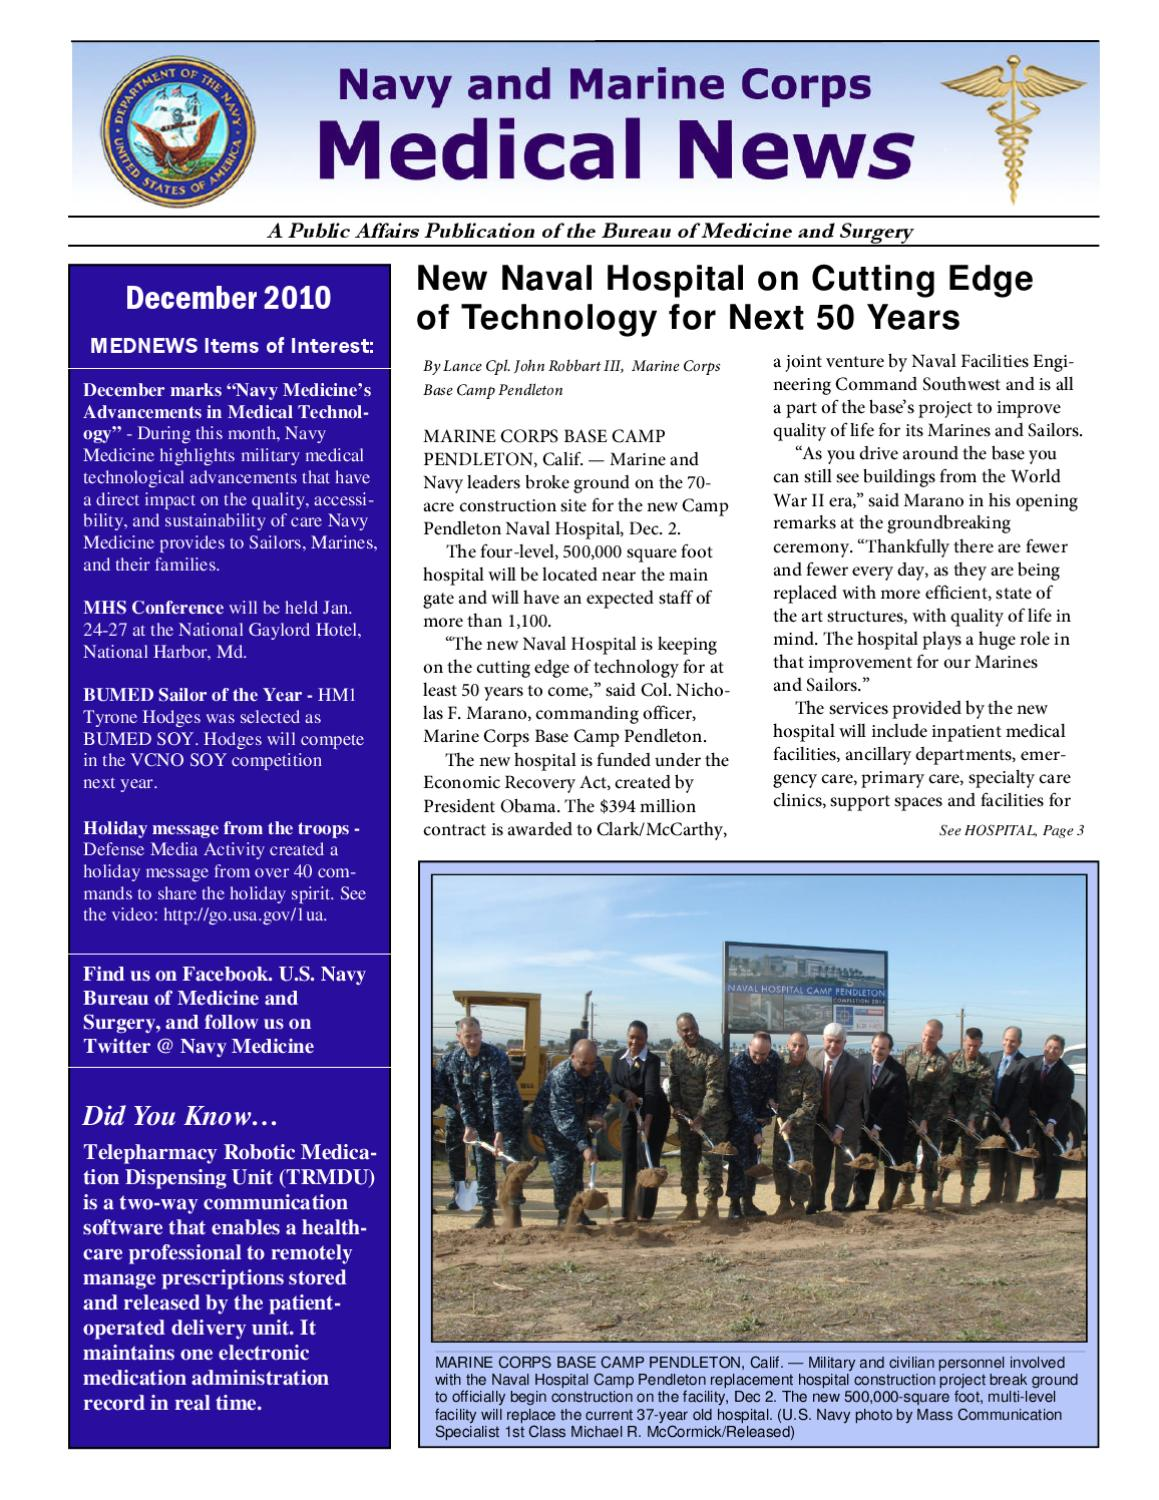 Navy-Marine Corps Medical News (December 2010) by Navy